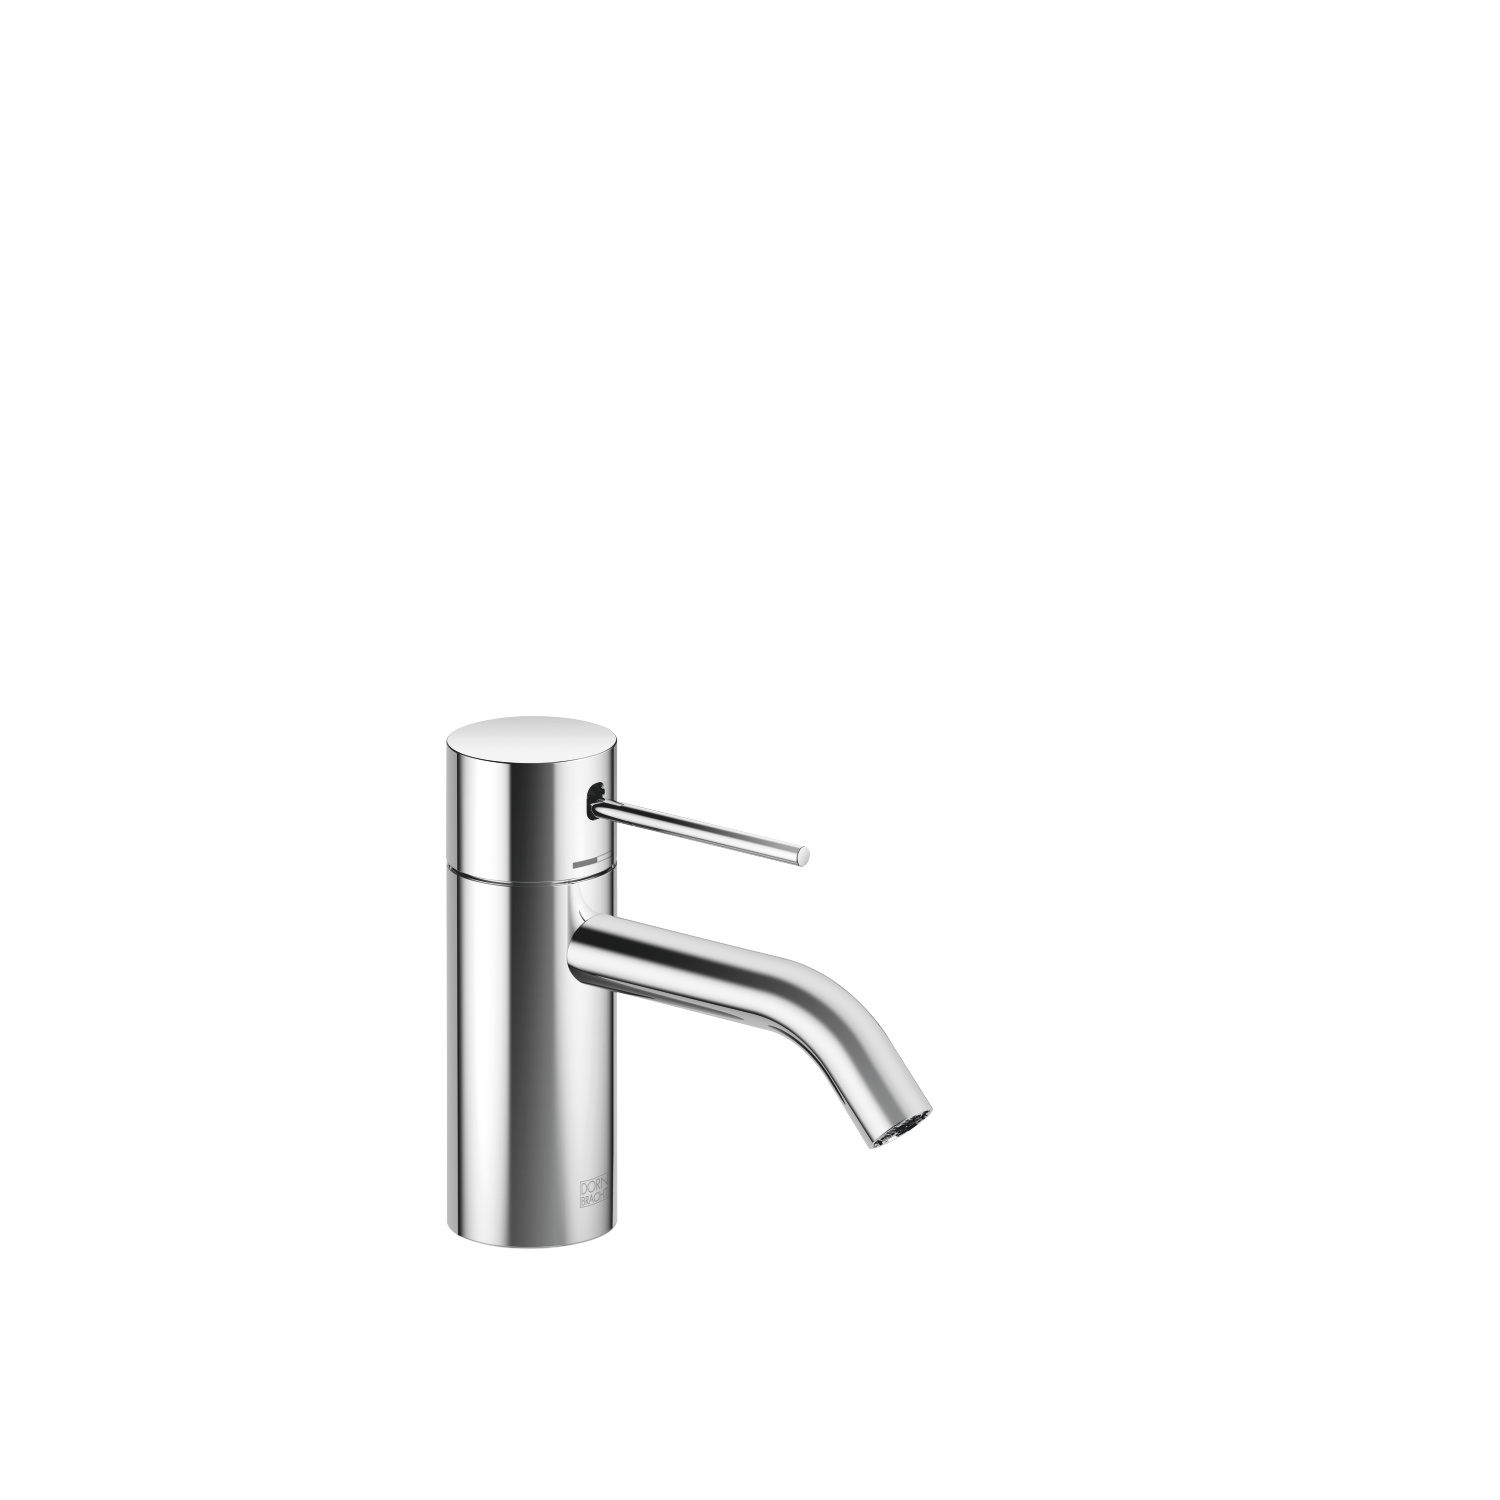 META SLIM Single-lever lavatory mixer without drain - polished chrome